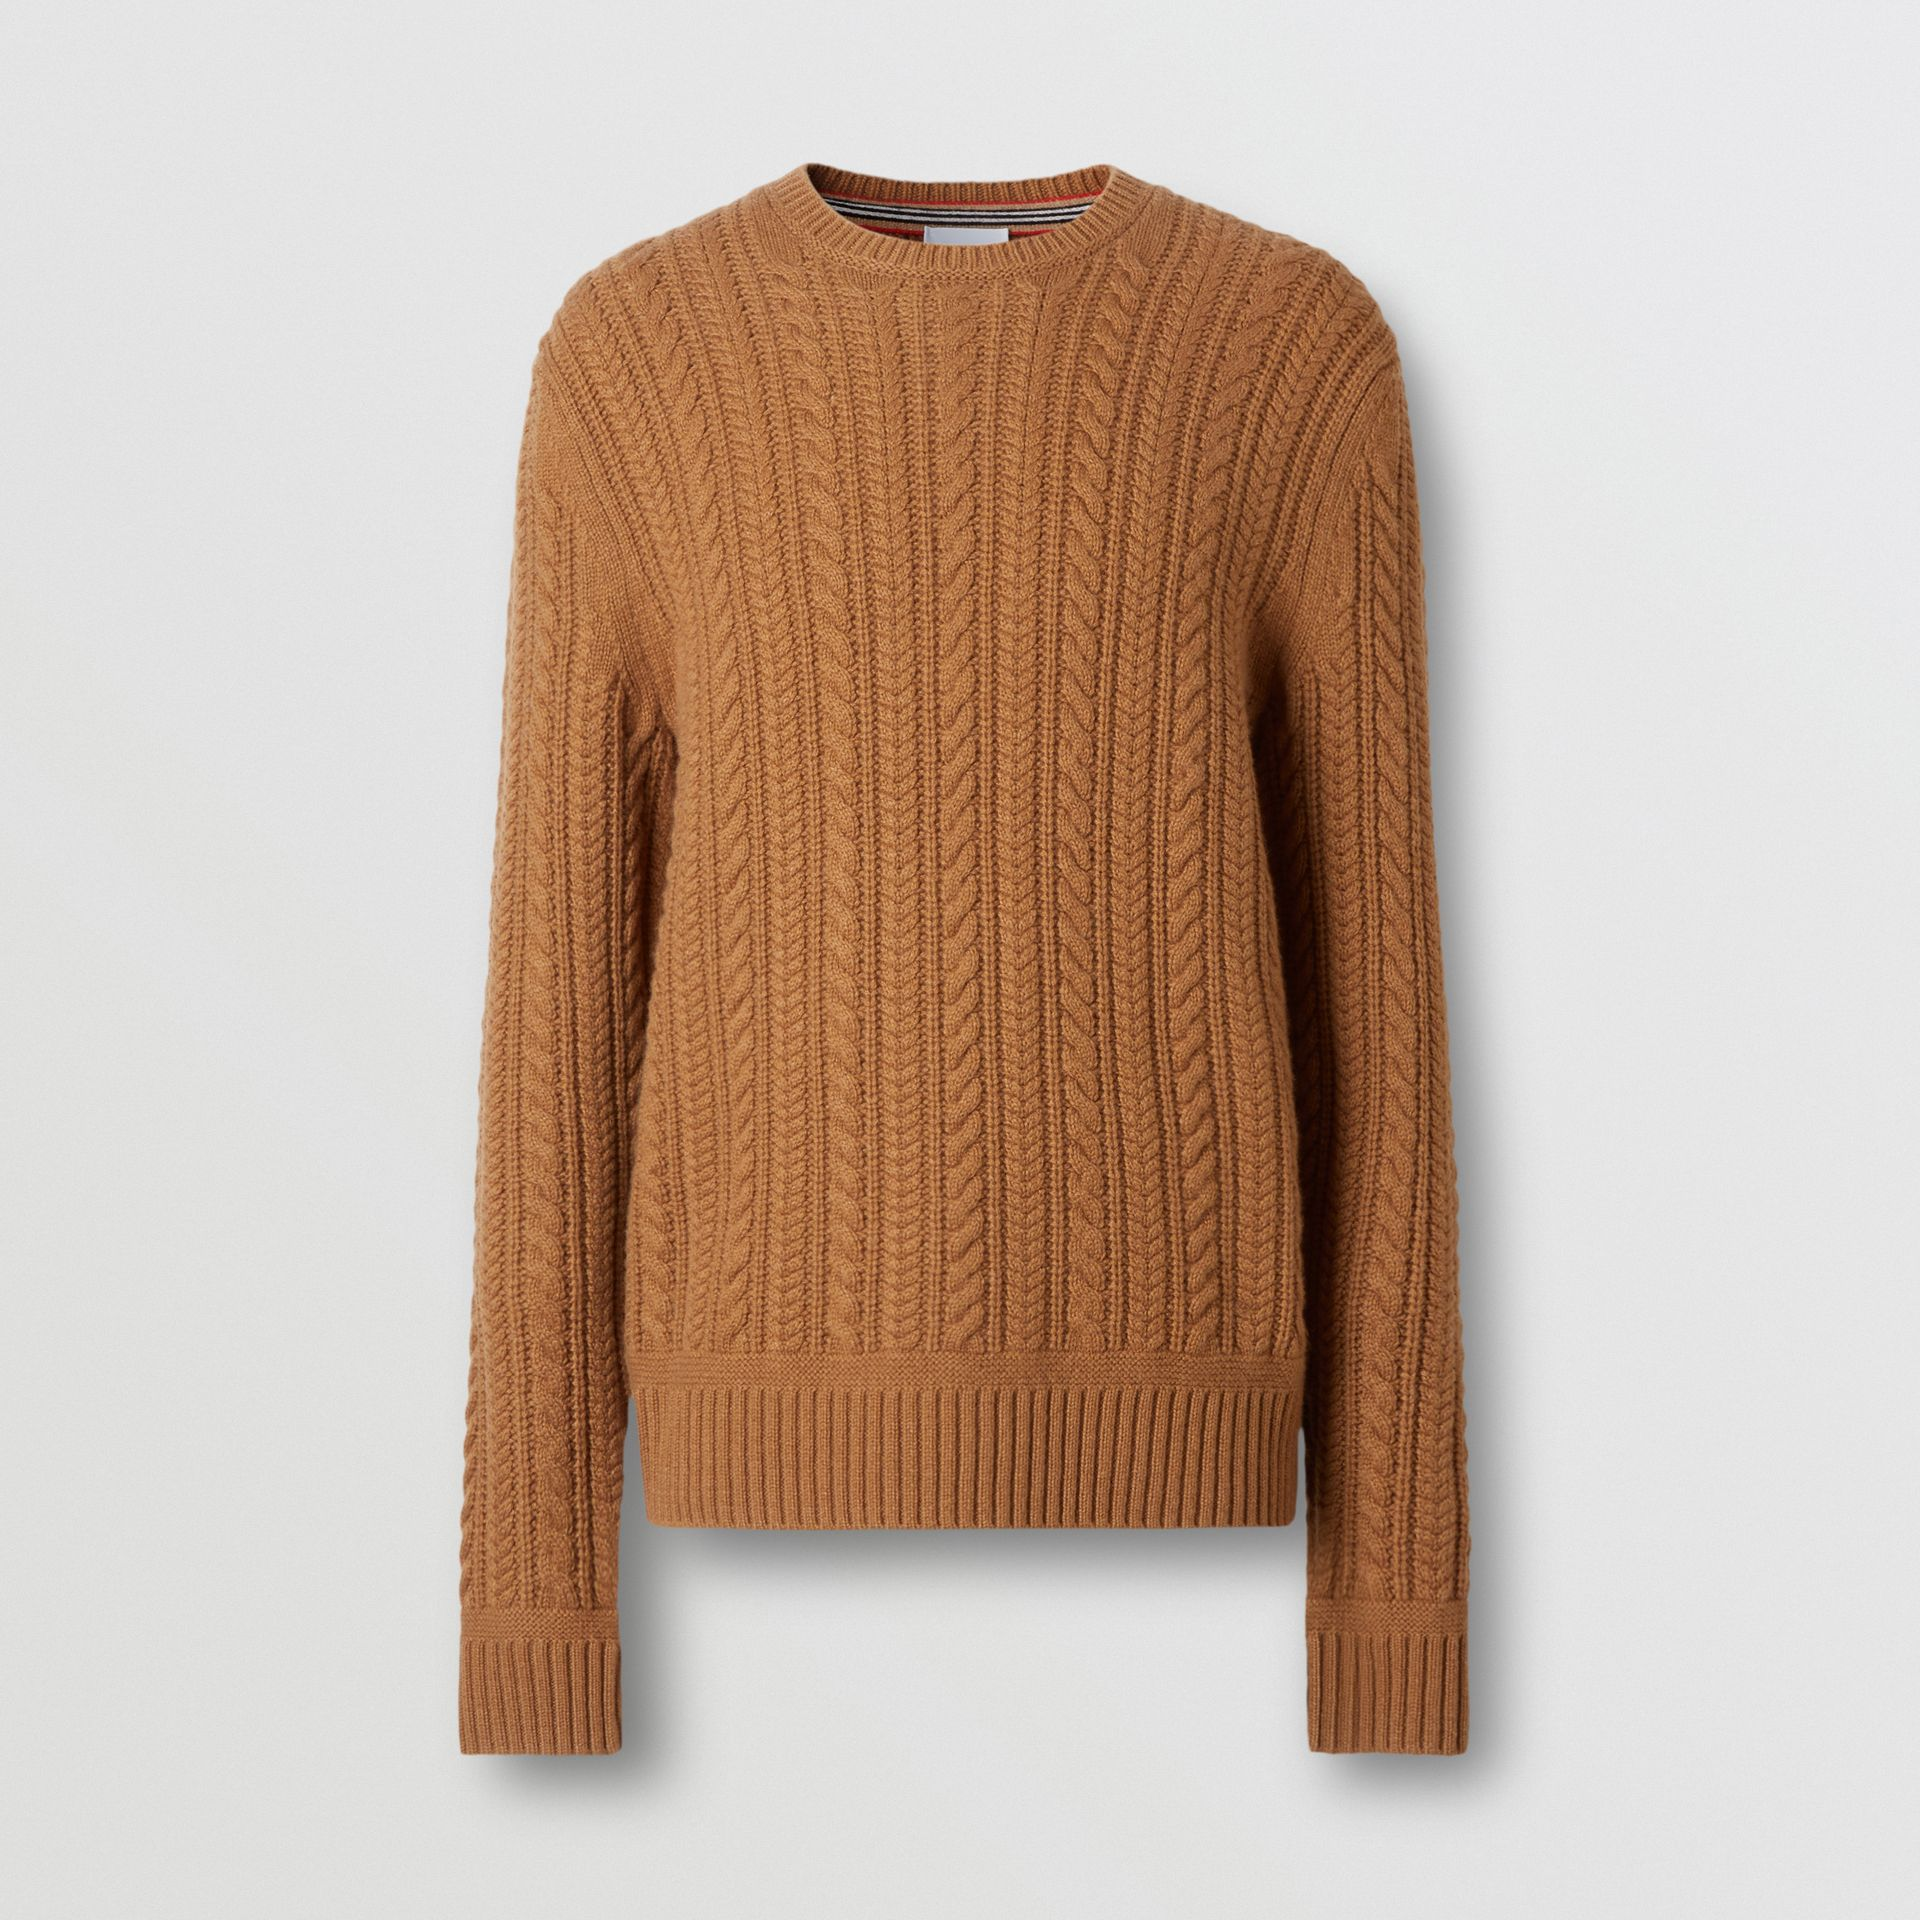 Cable Knit Cashmere Sweater in Maple - Men | Burberry United Kingdom - gallery image 3